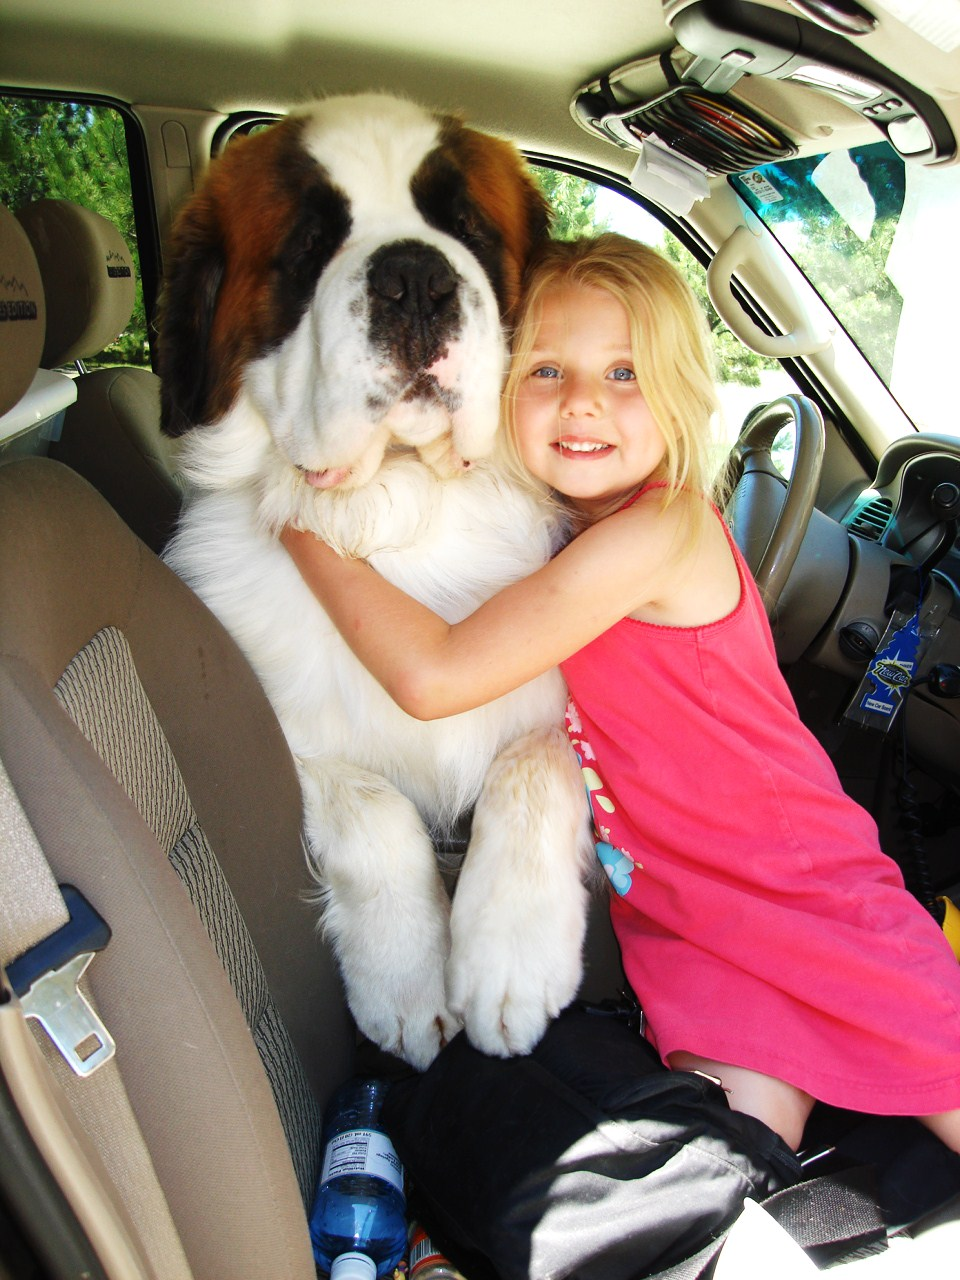 Saint Bernard Full Grown Compared To Human | www.imgkid ...